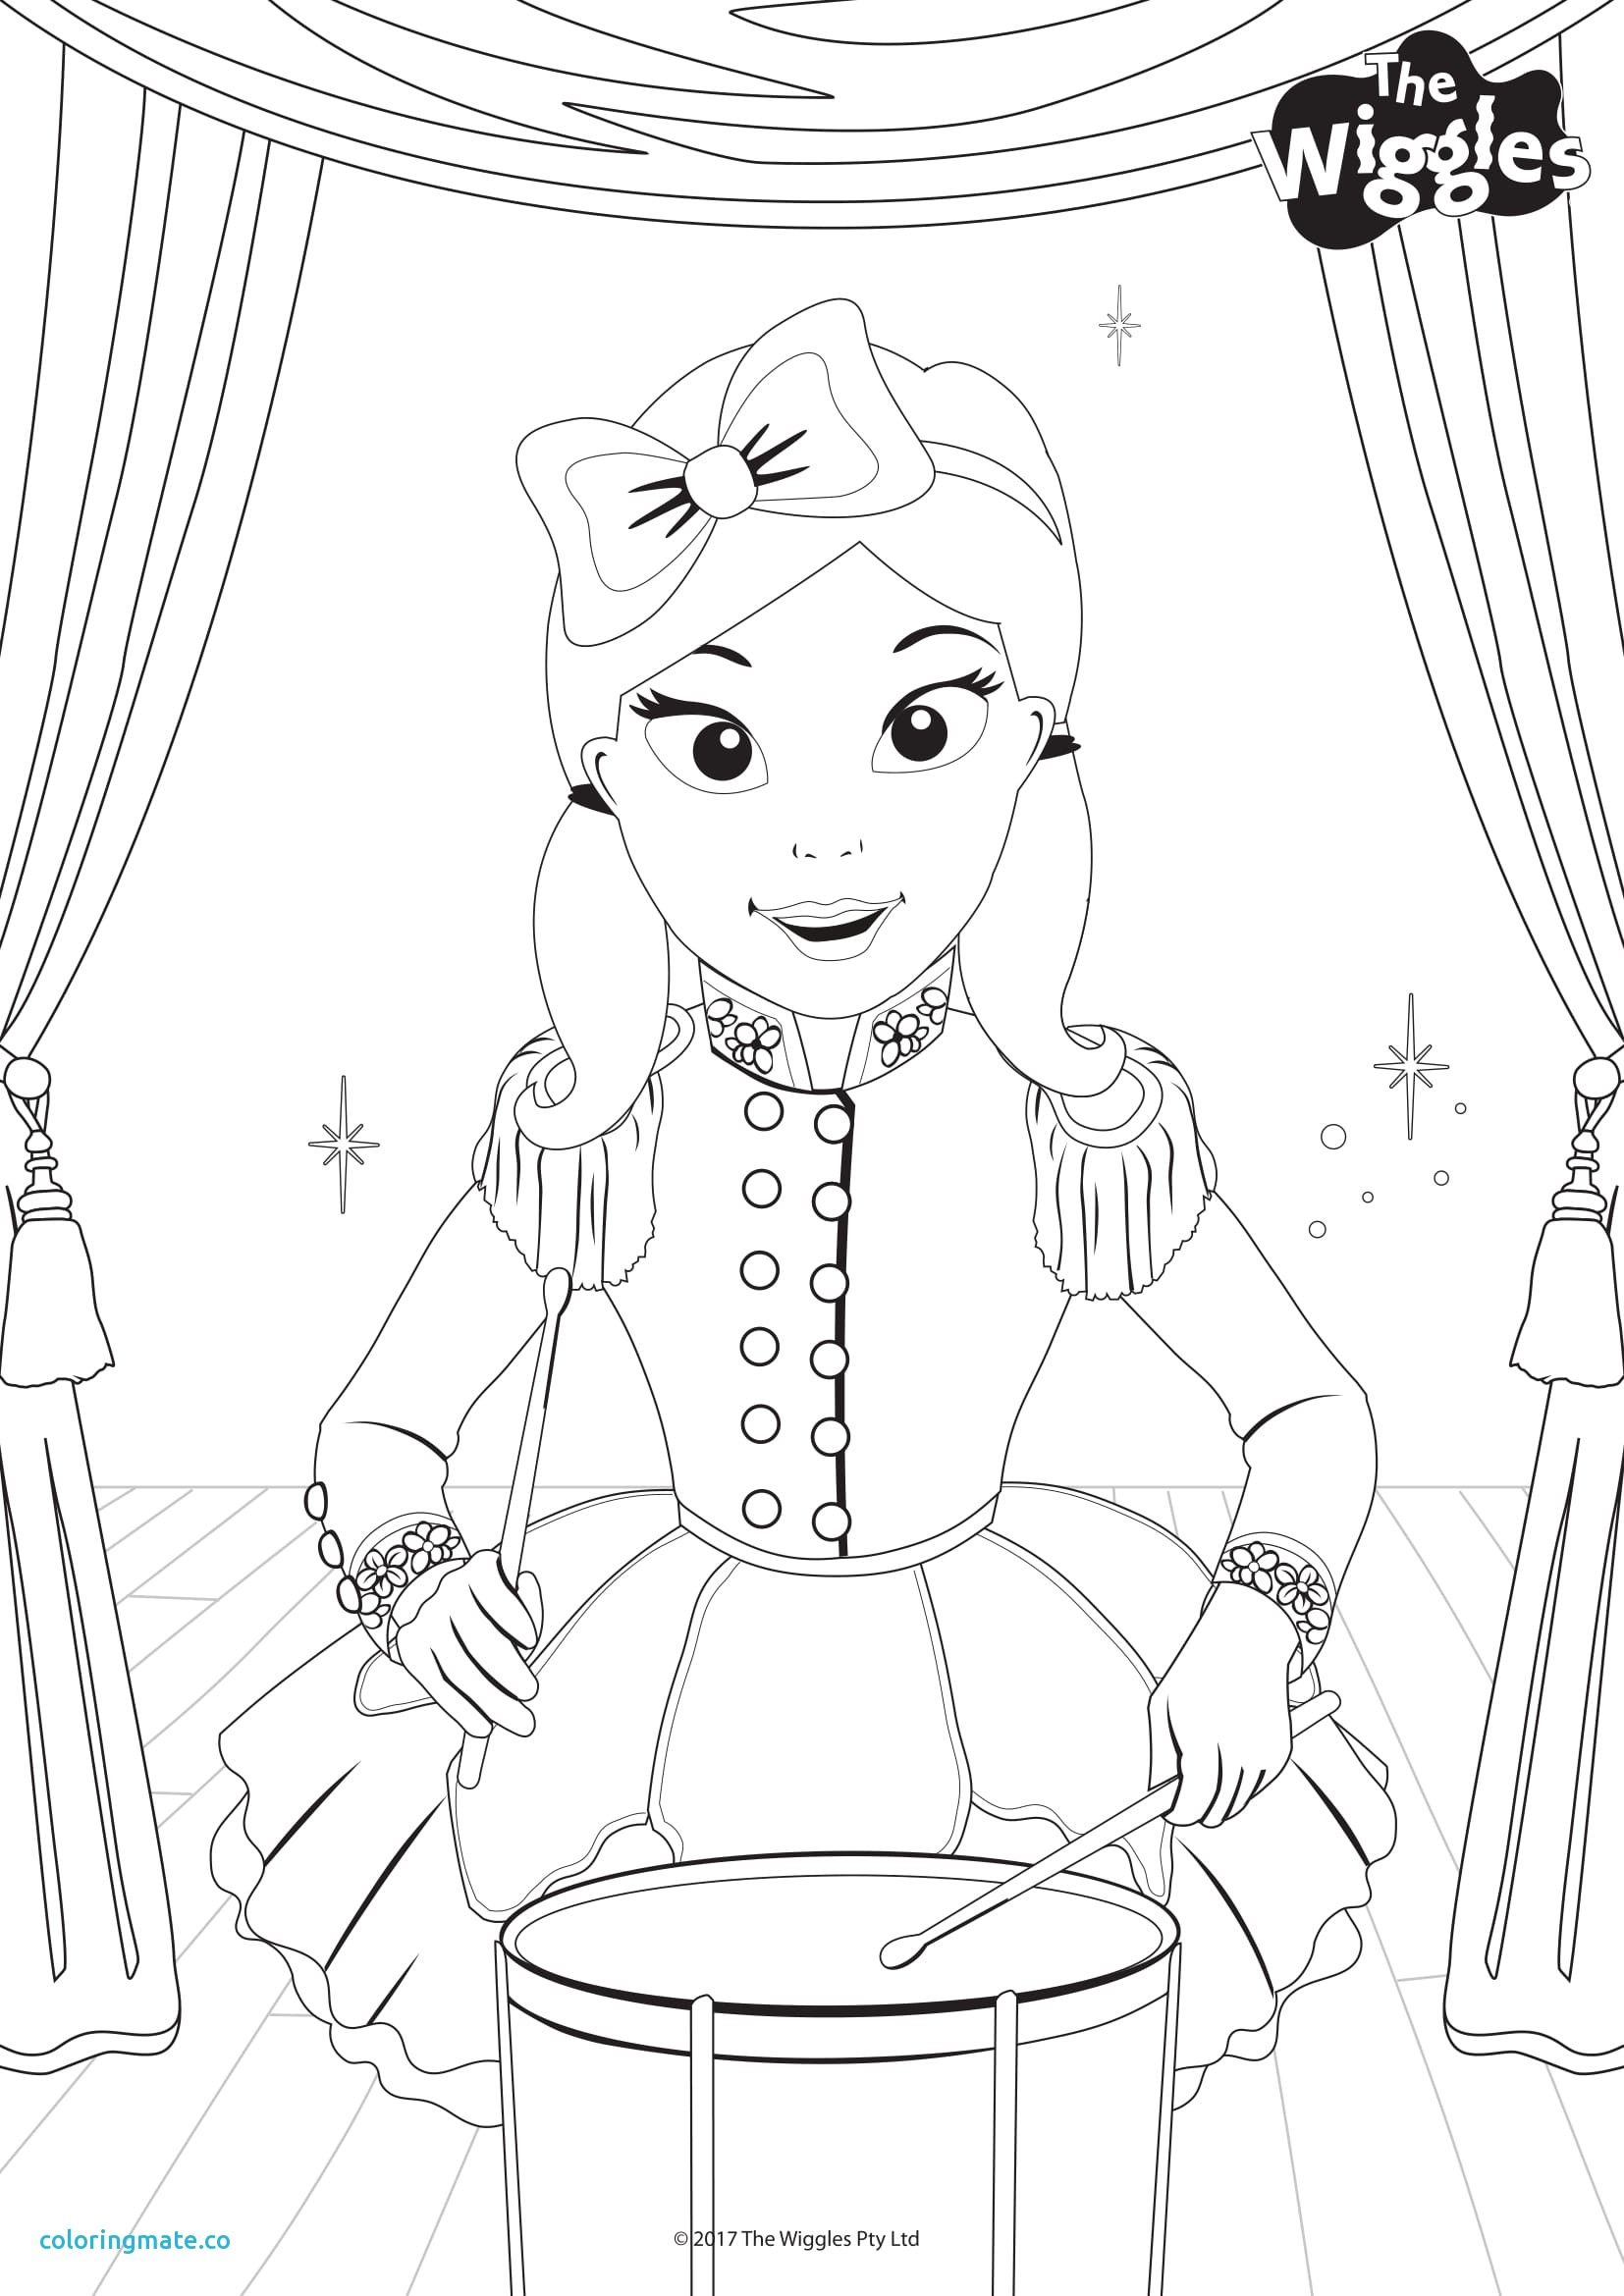 The Wiggles Coloring Pages Lovely Activity Color Emma Performer Ready Steady Wiggle Sprout Of Coloriafes Disney Wiggles Birthday Wiggles Party Emma Wiggle